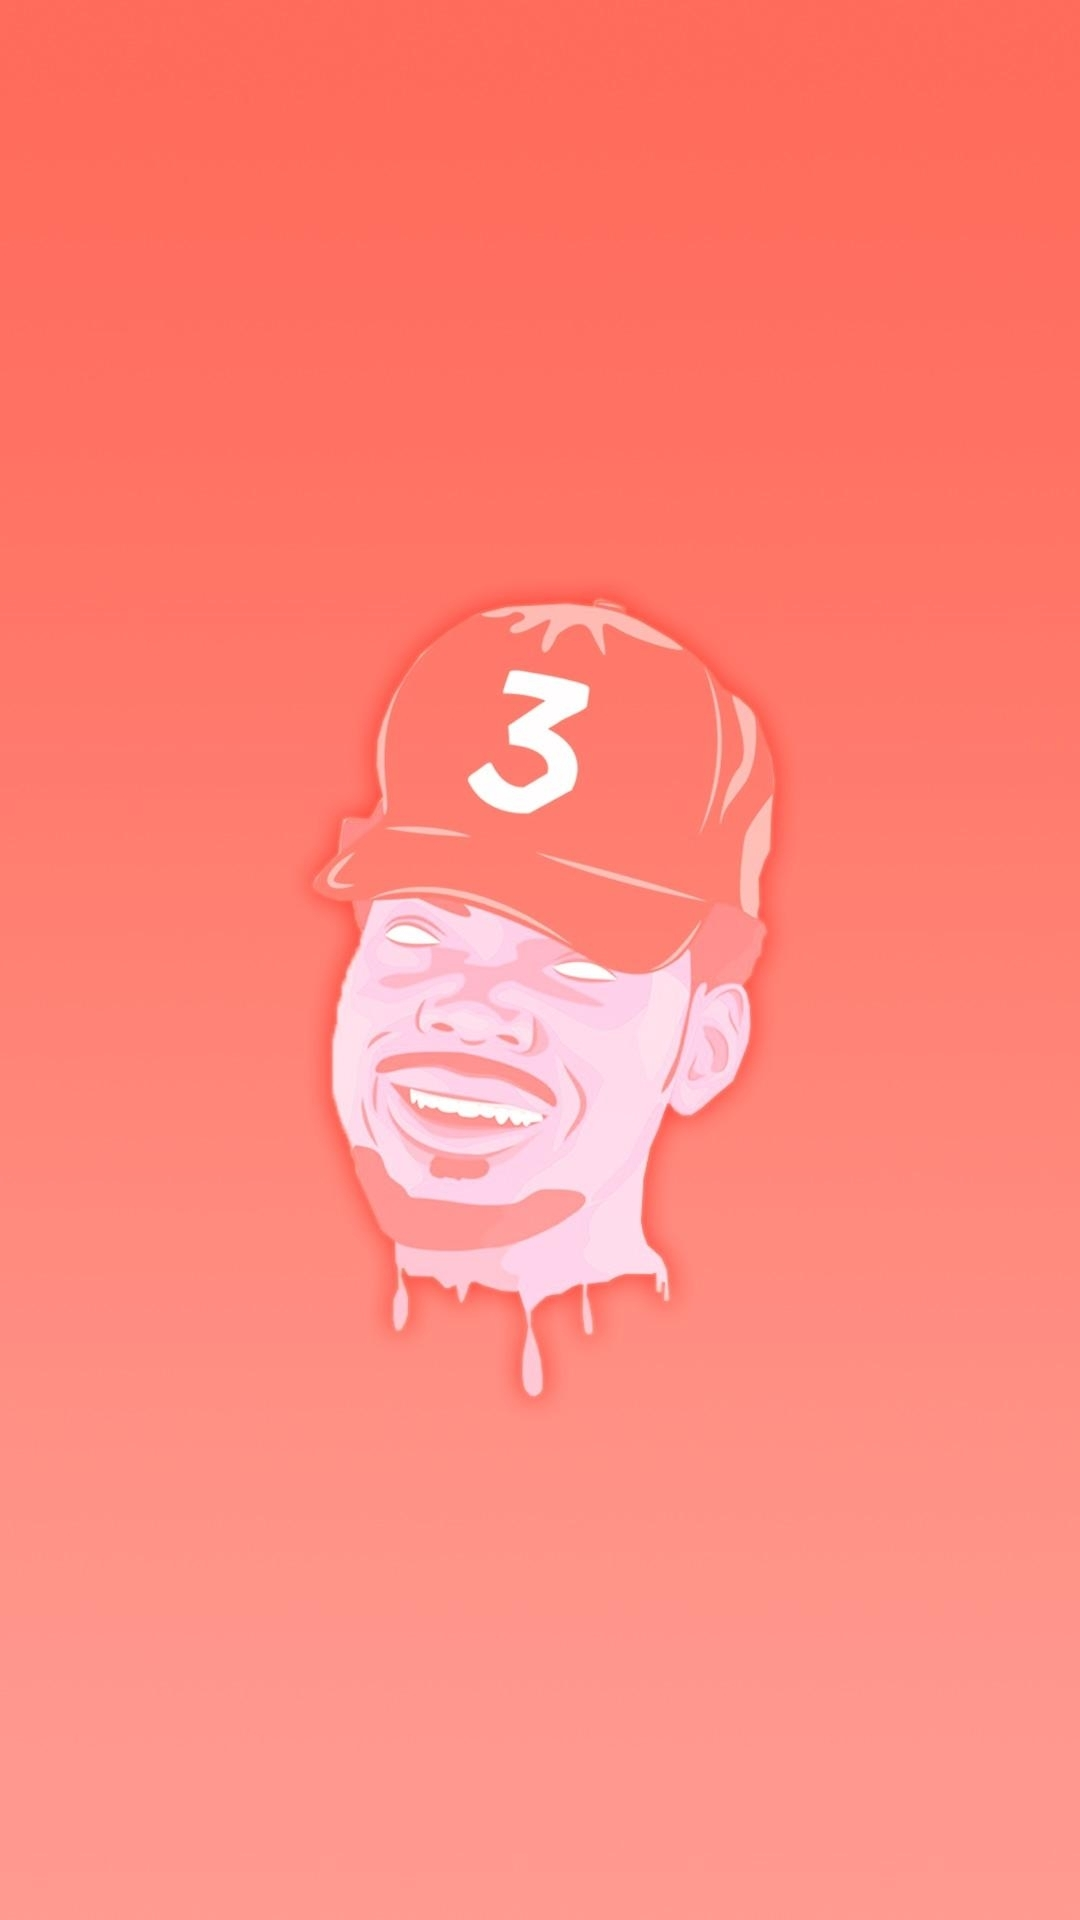 chance iphone wallpaper. made with desognu/thatguywithcoolhair